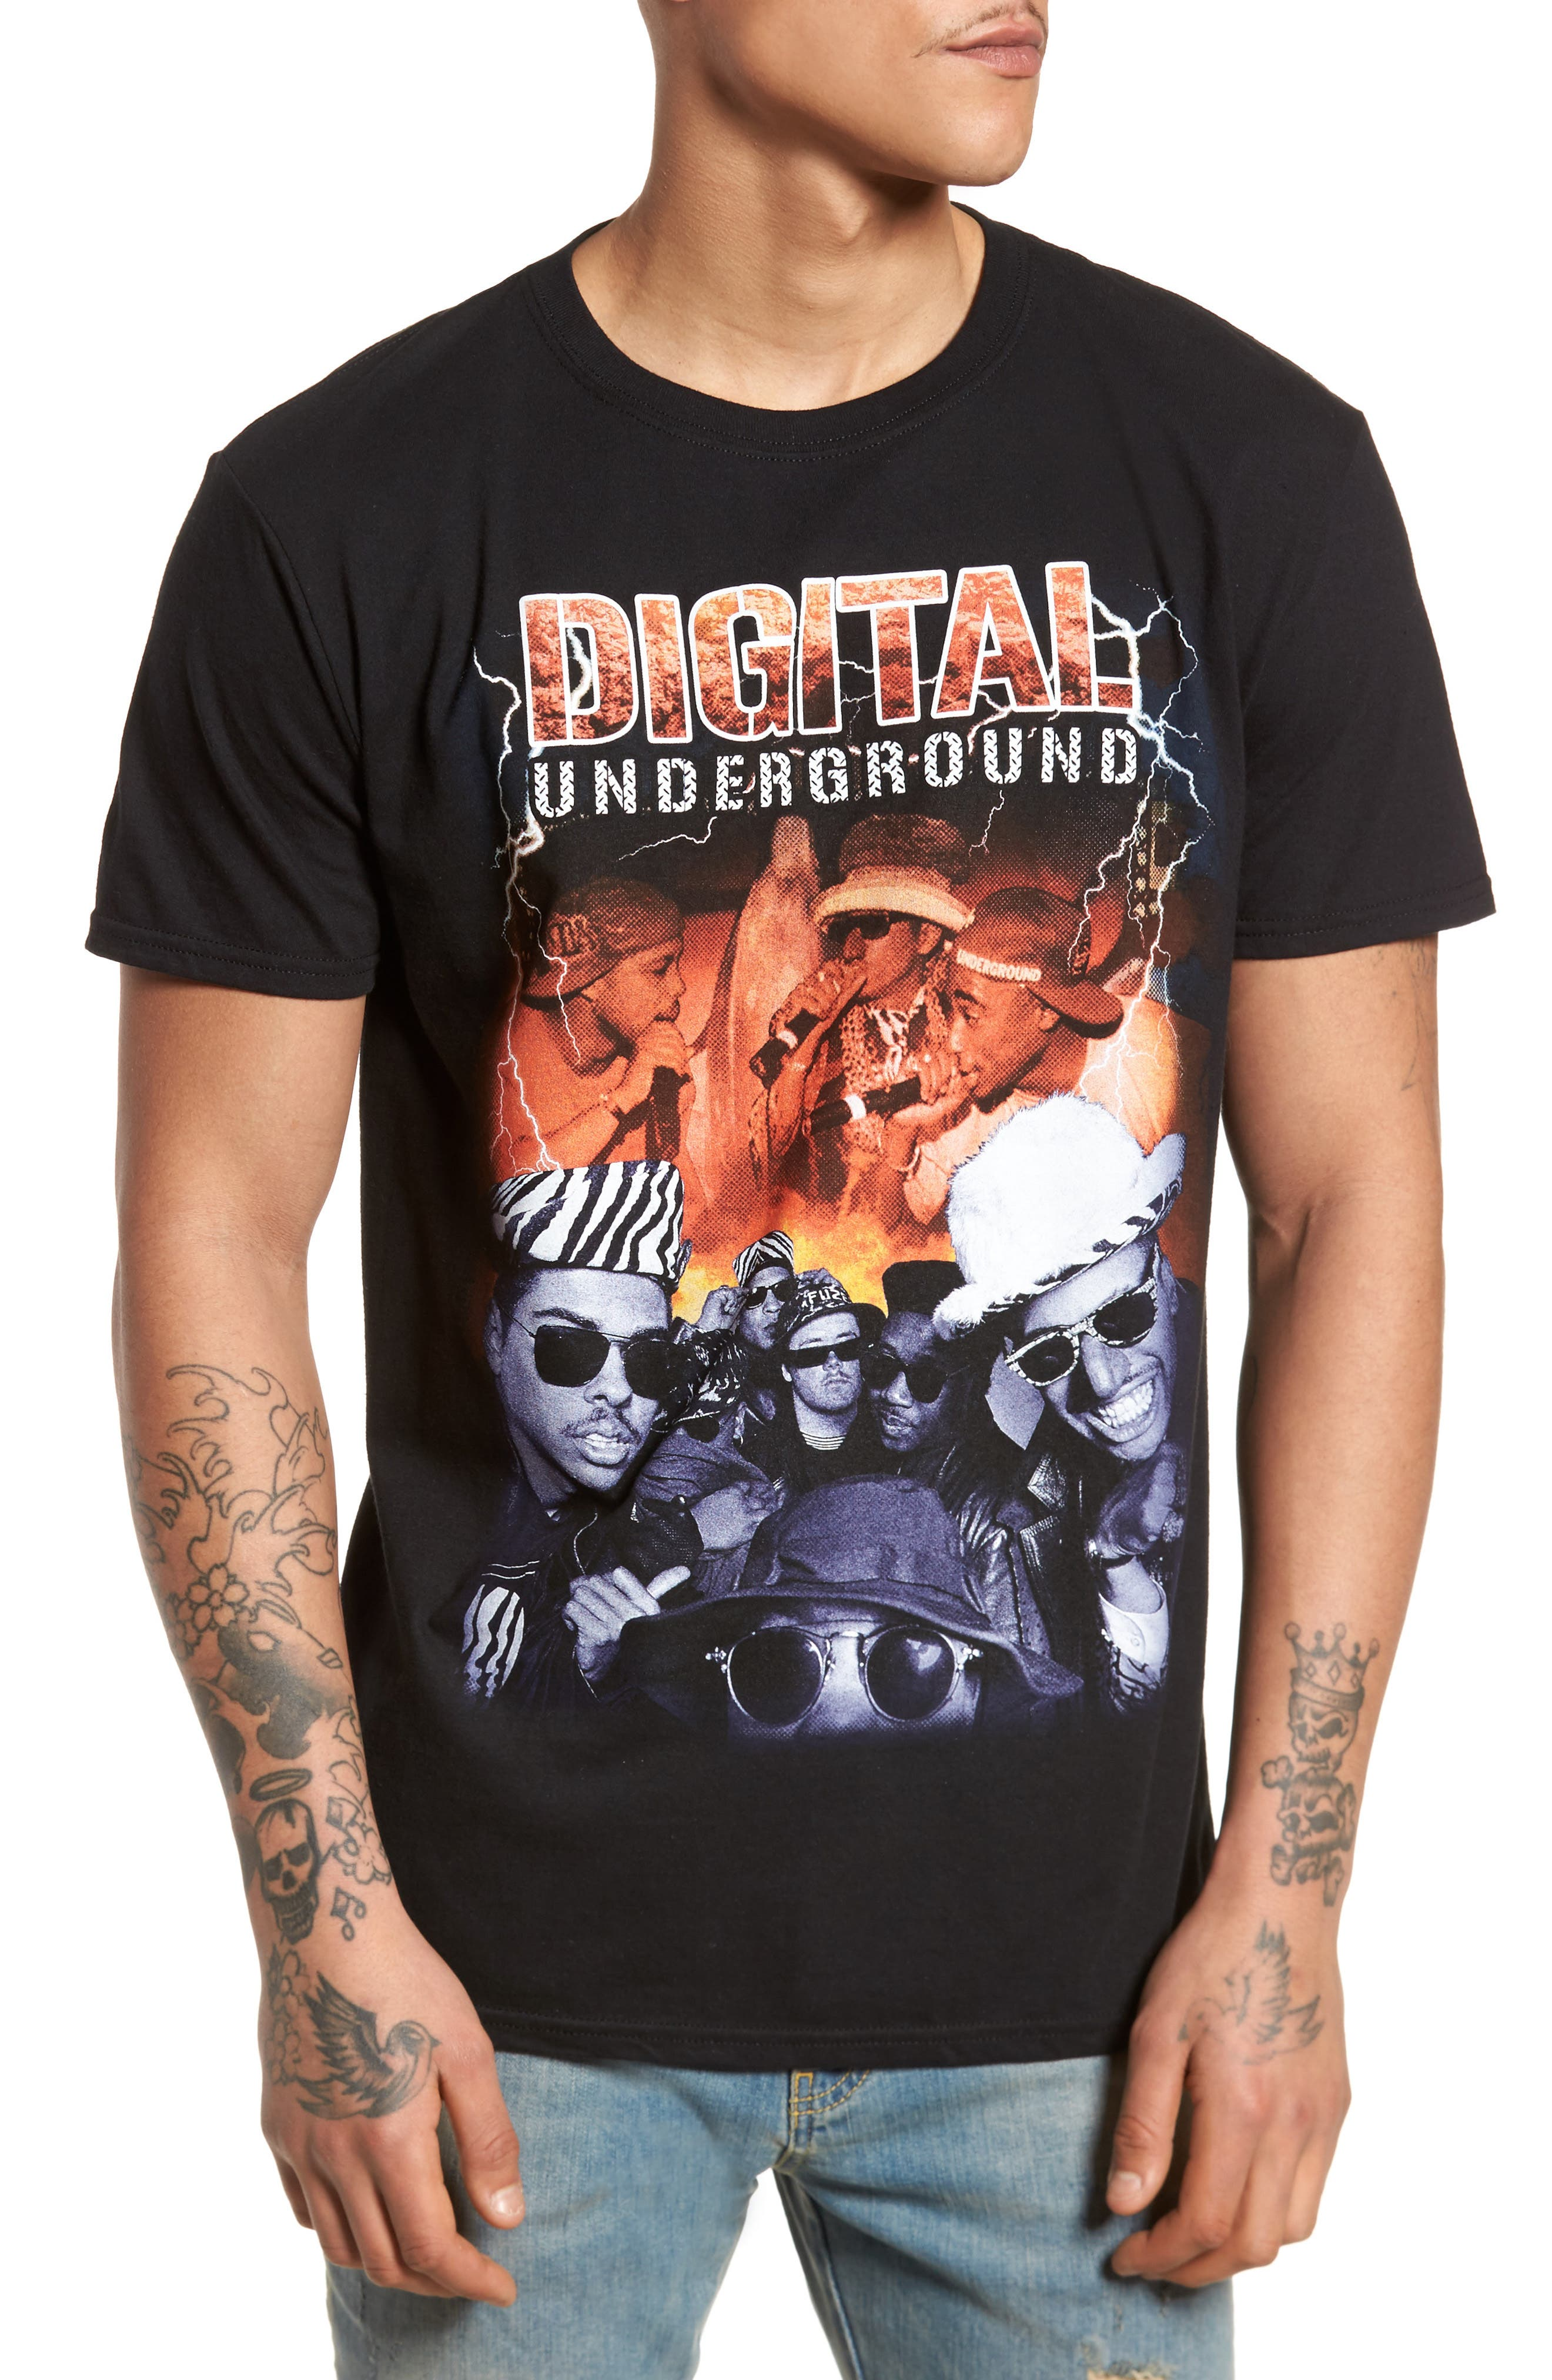 The Rail Digital Underground Graphic T-Shirt